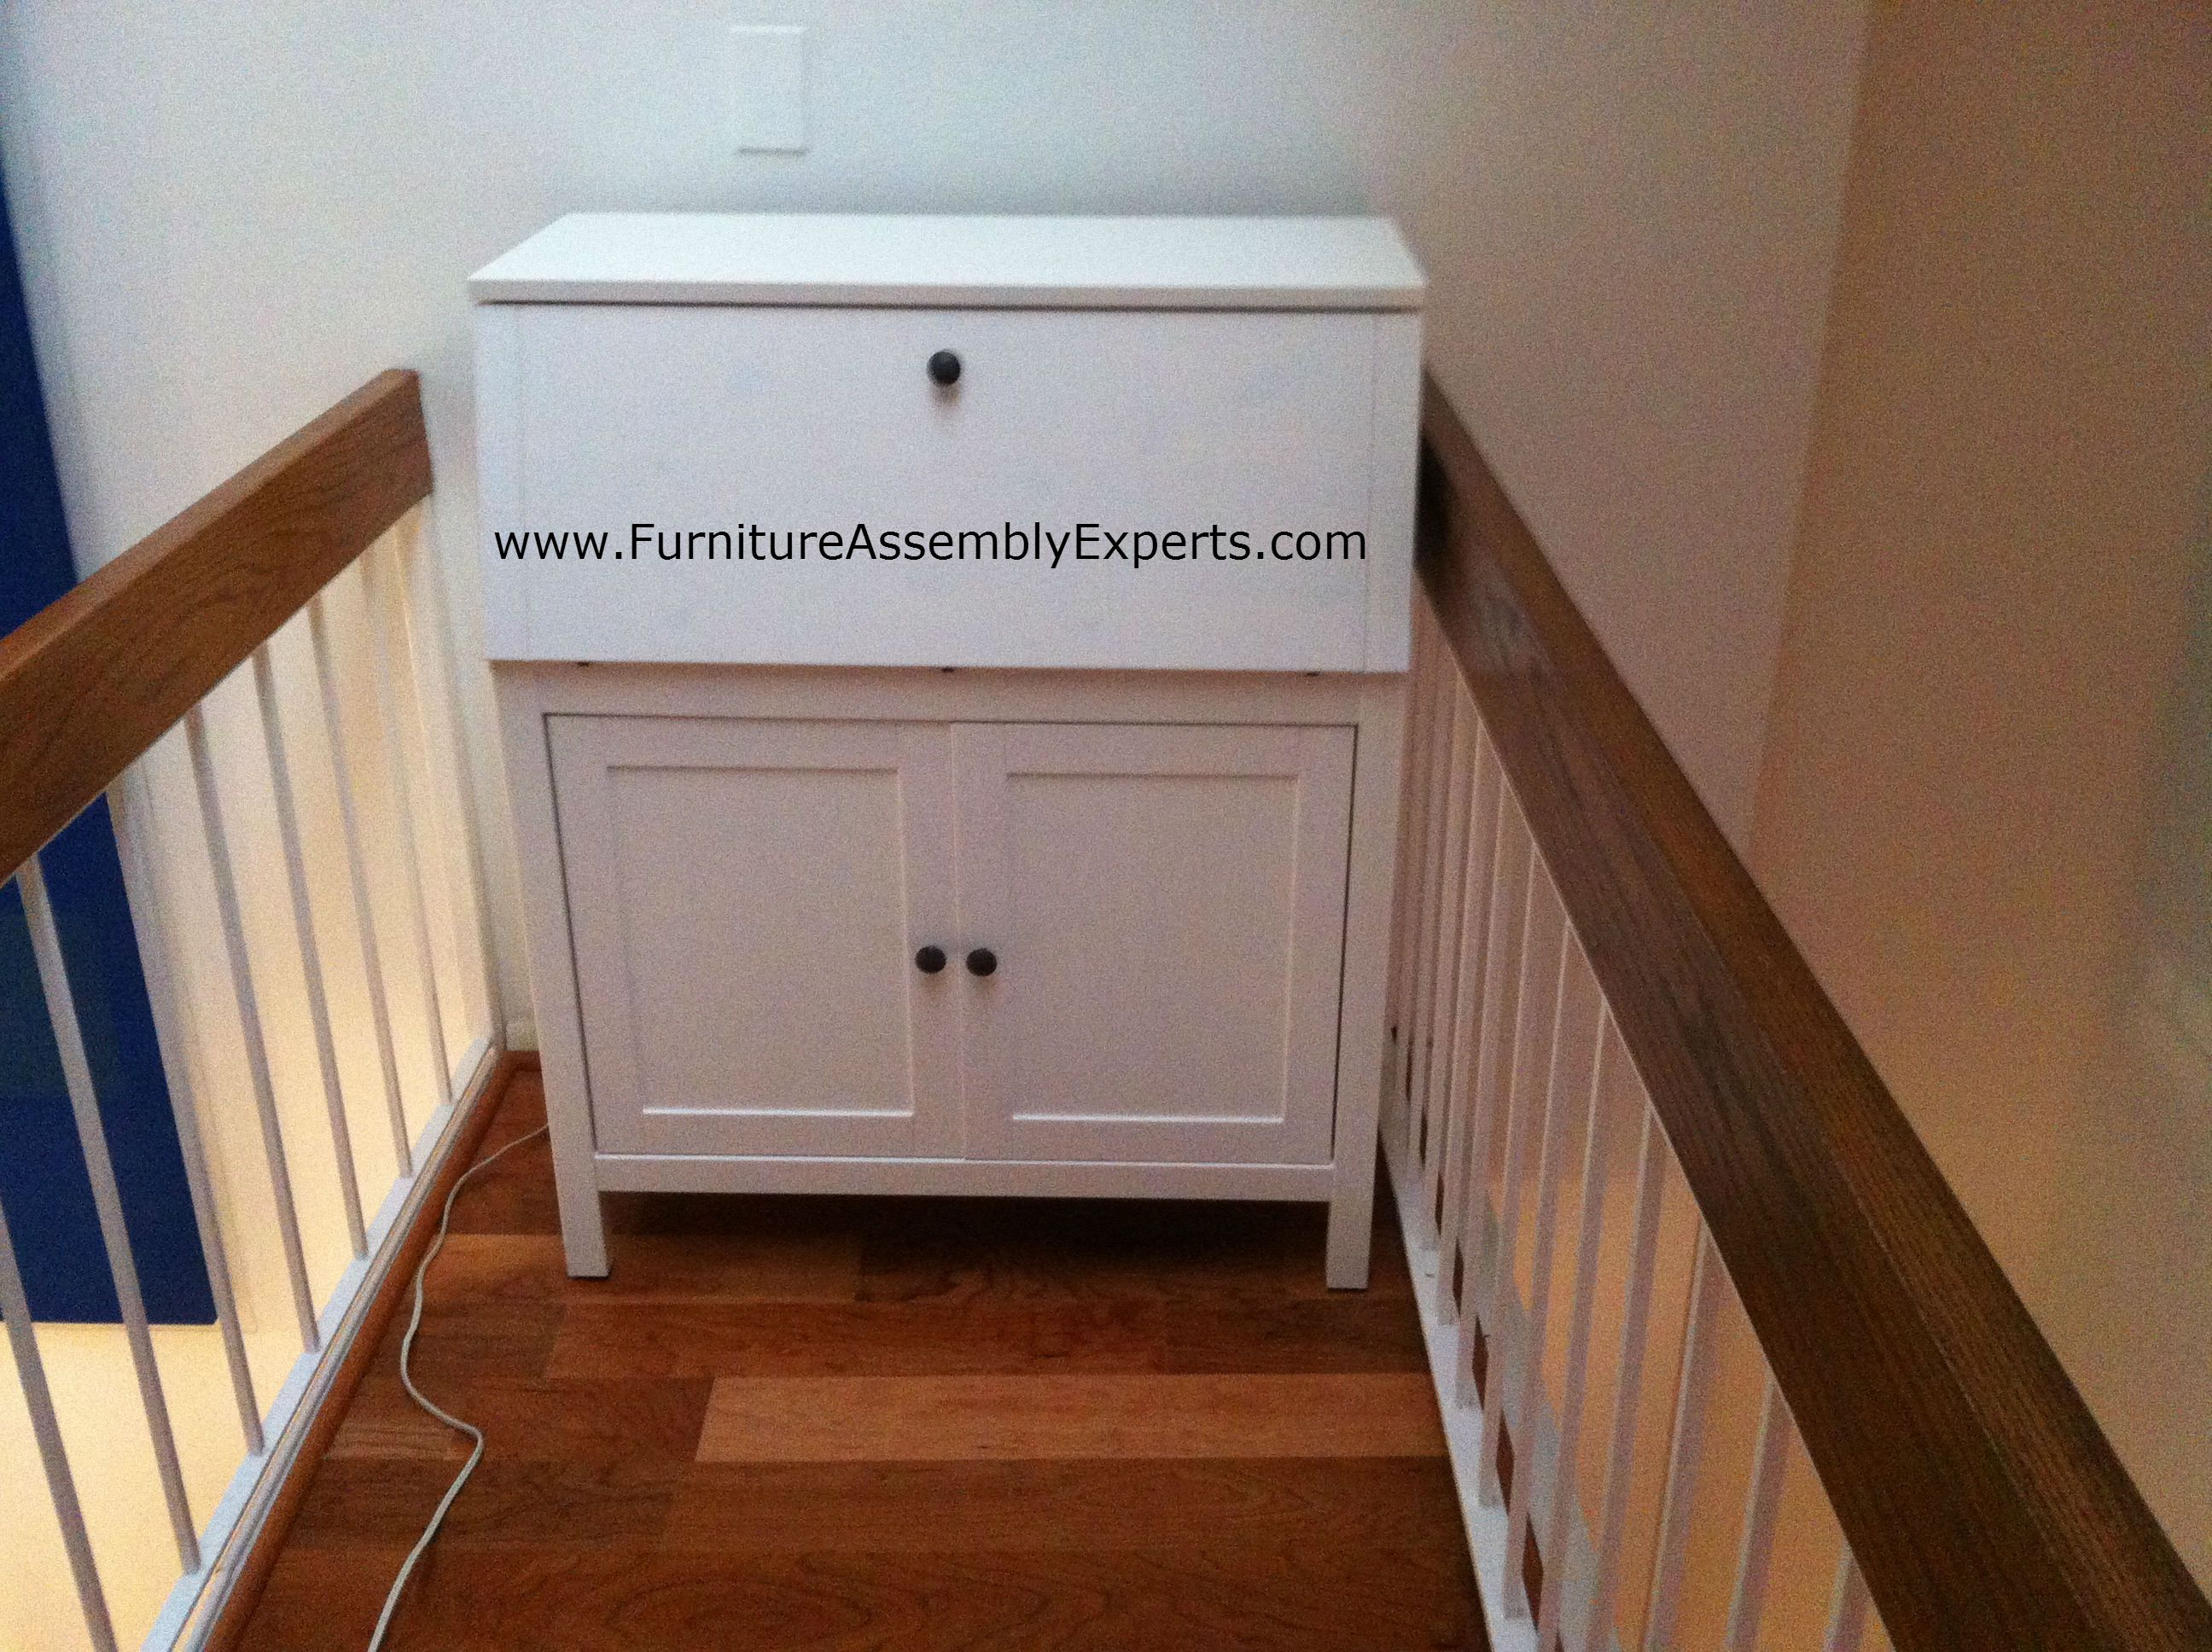 Ikea hemnes secretary desk assembled in pikesville md by furniture